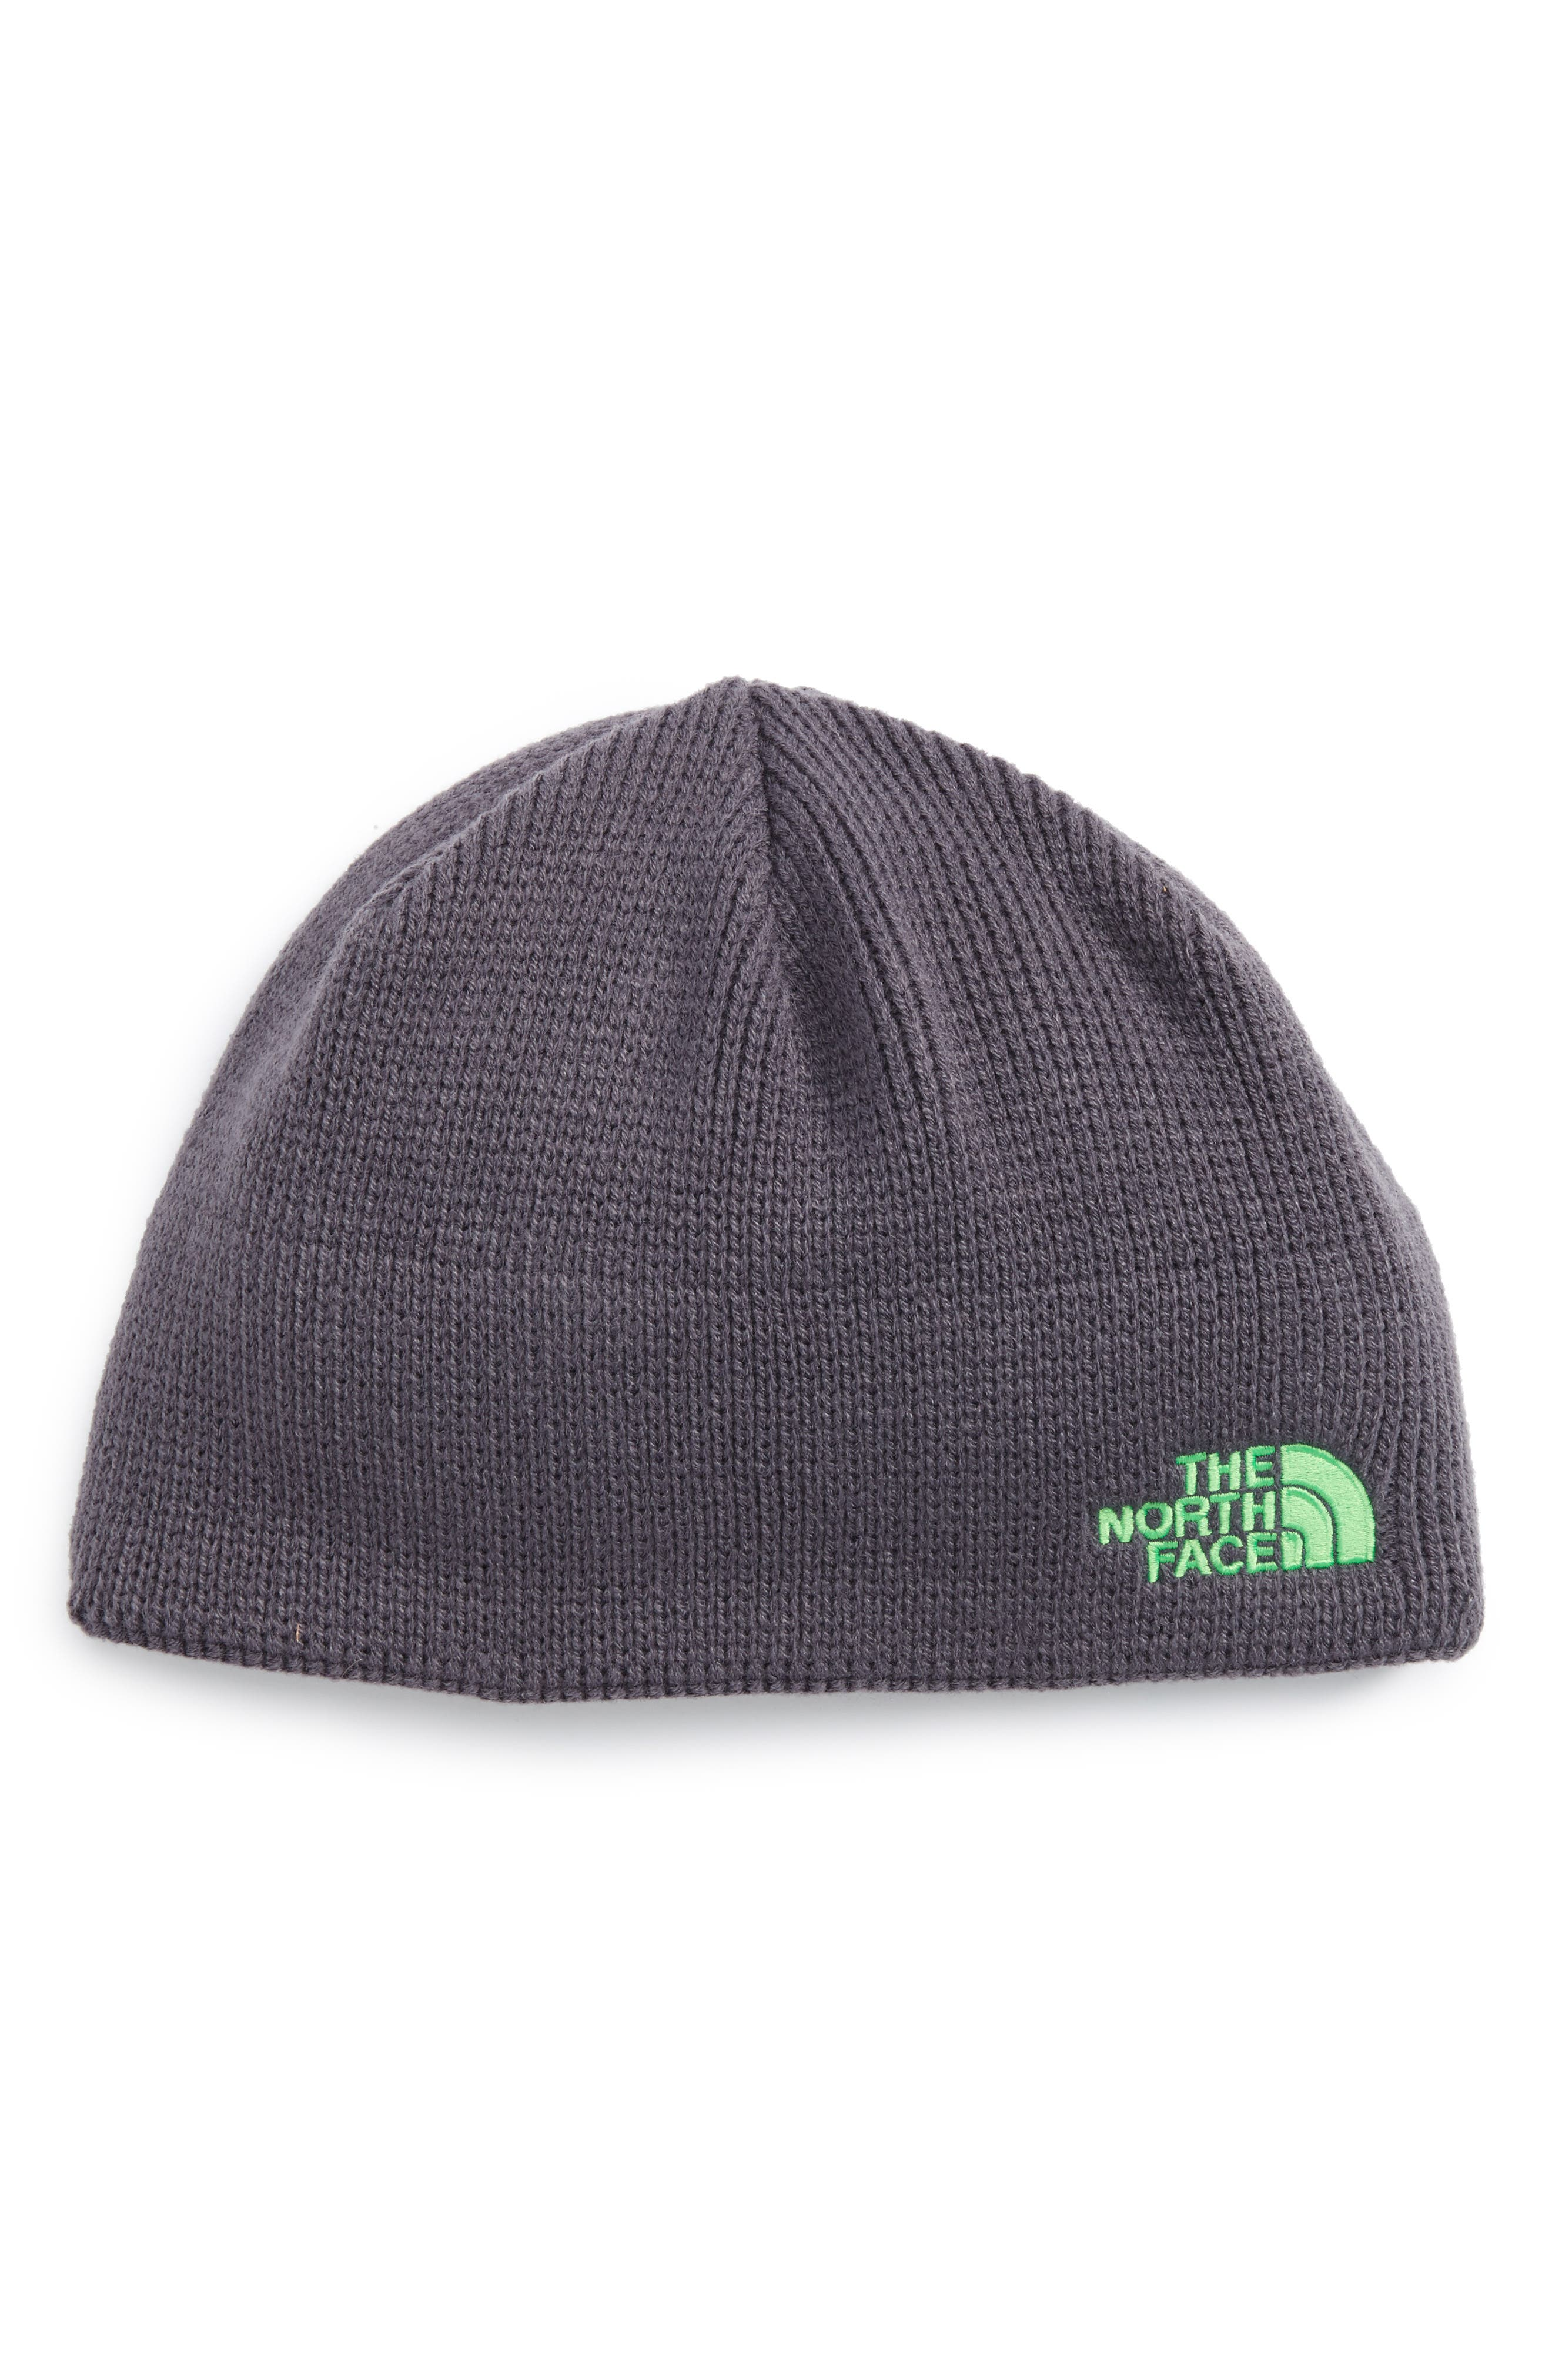 The North Face Youth Bones Fleece Lined Beanie (Boys)